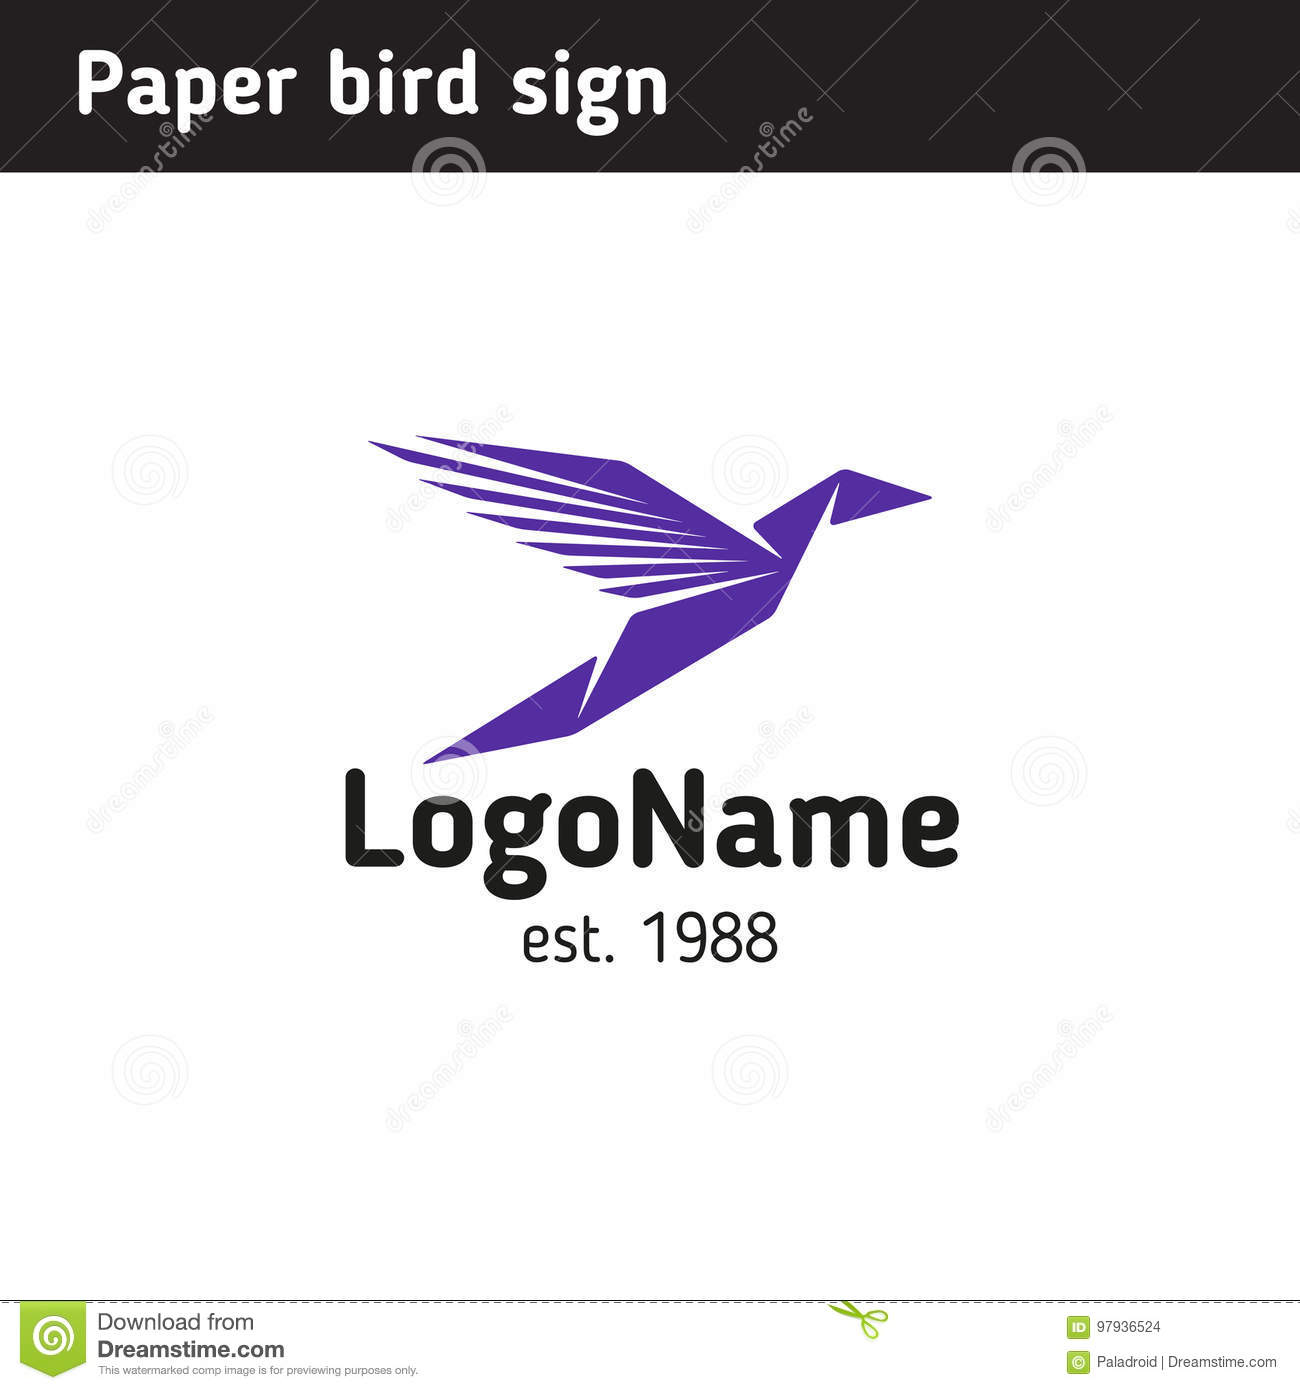 Template Logo In The Form Of Paper Birds Is Universal For Any Sphere